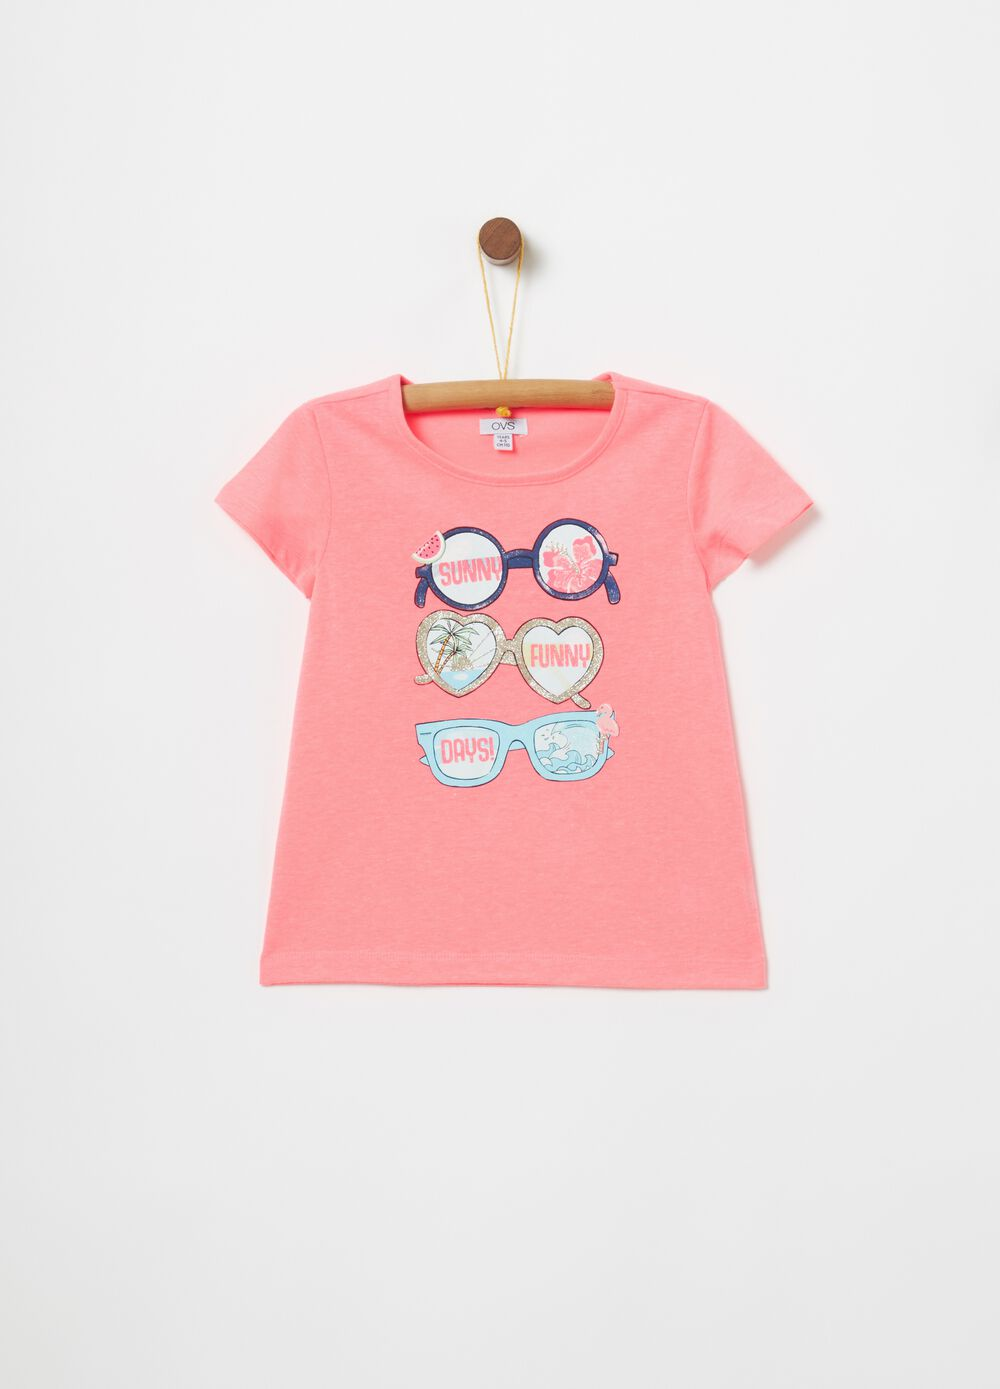 T-shirt in cotone stampa occhiali